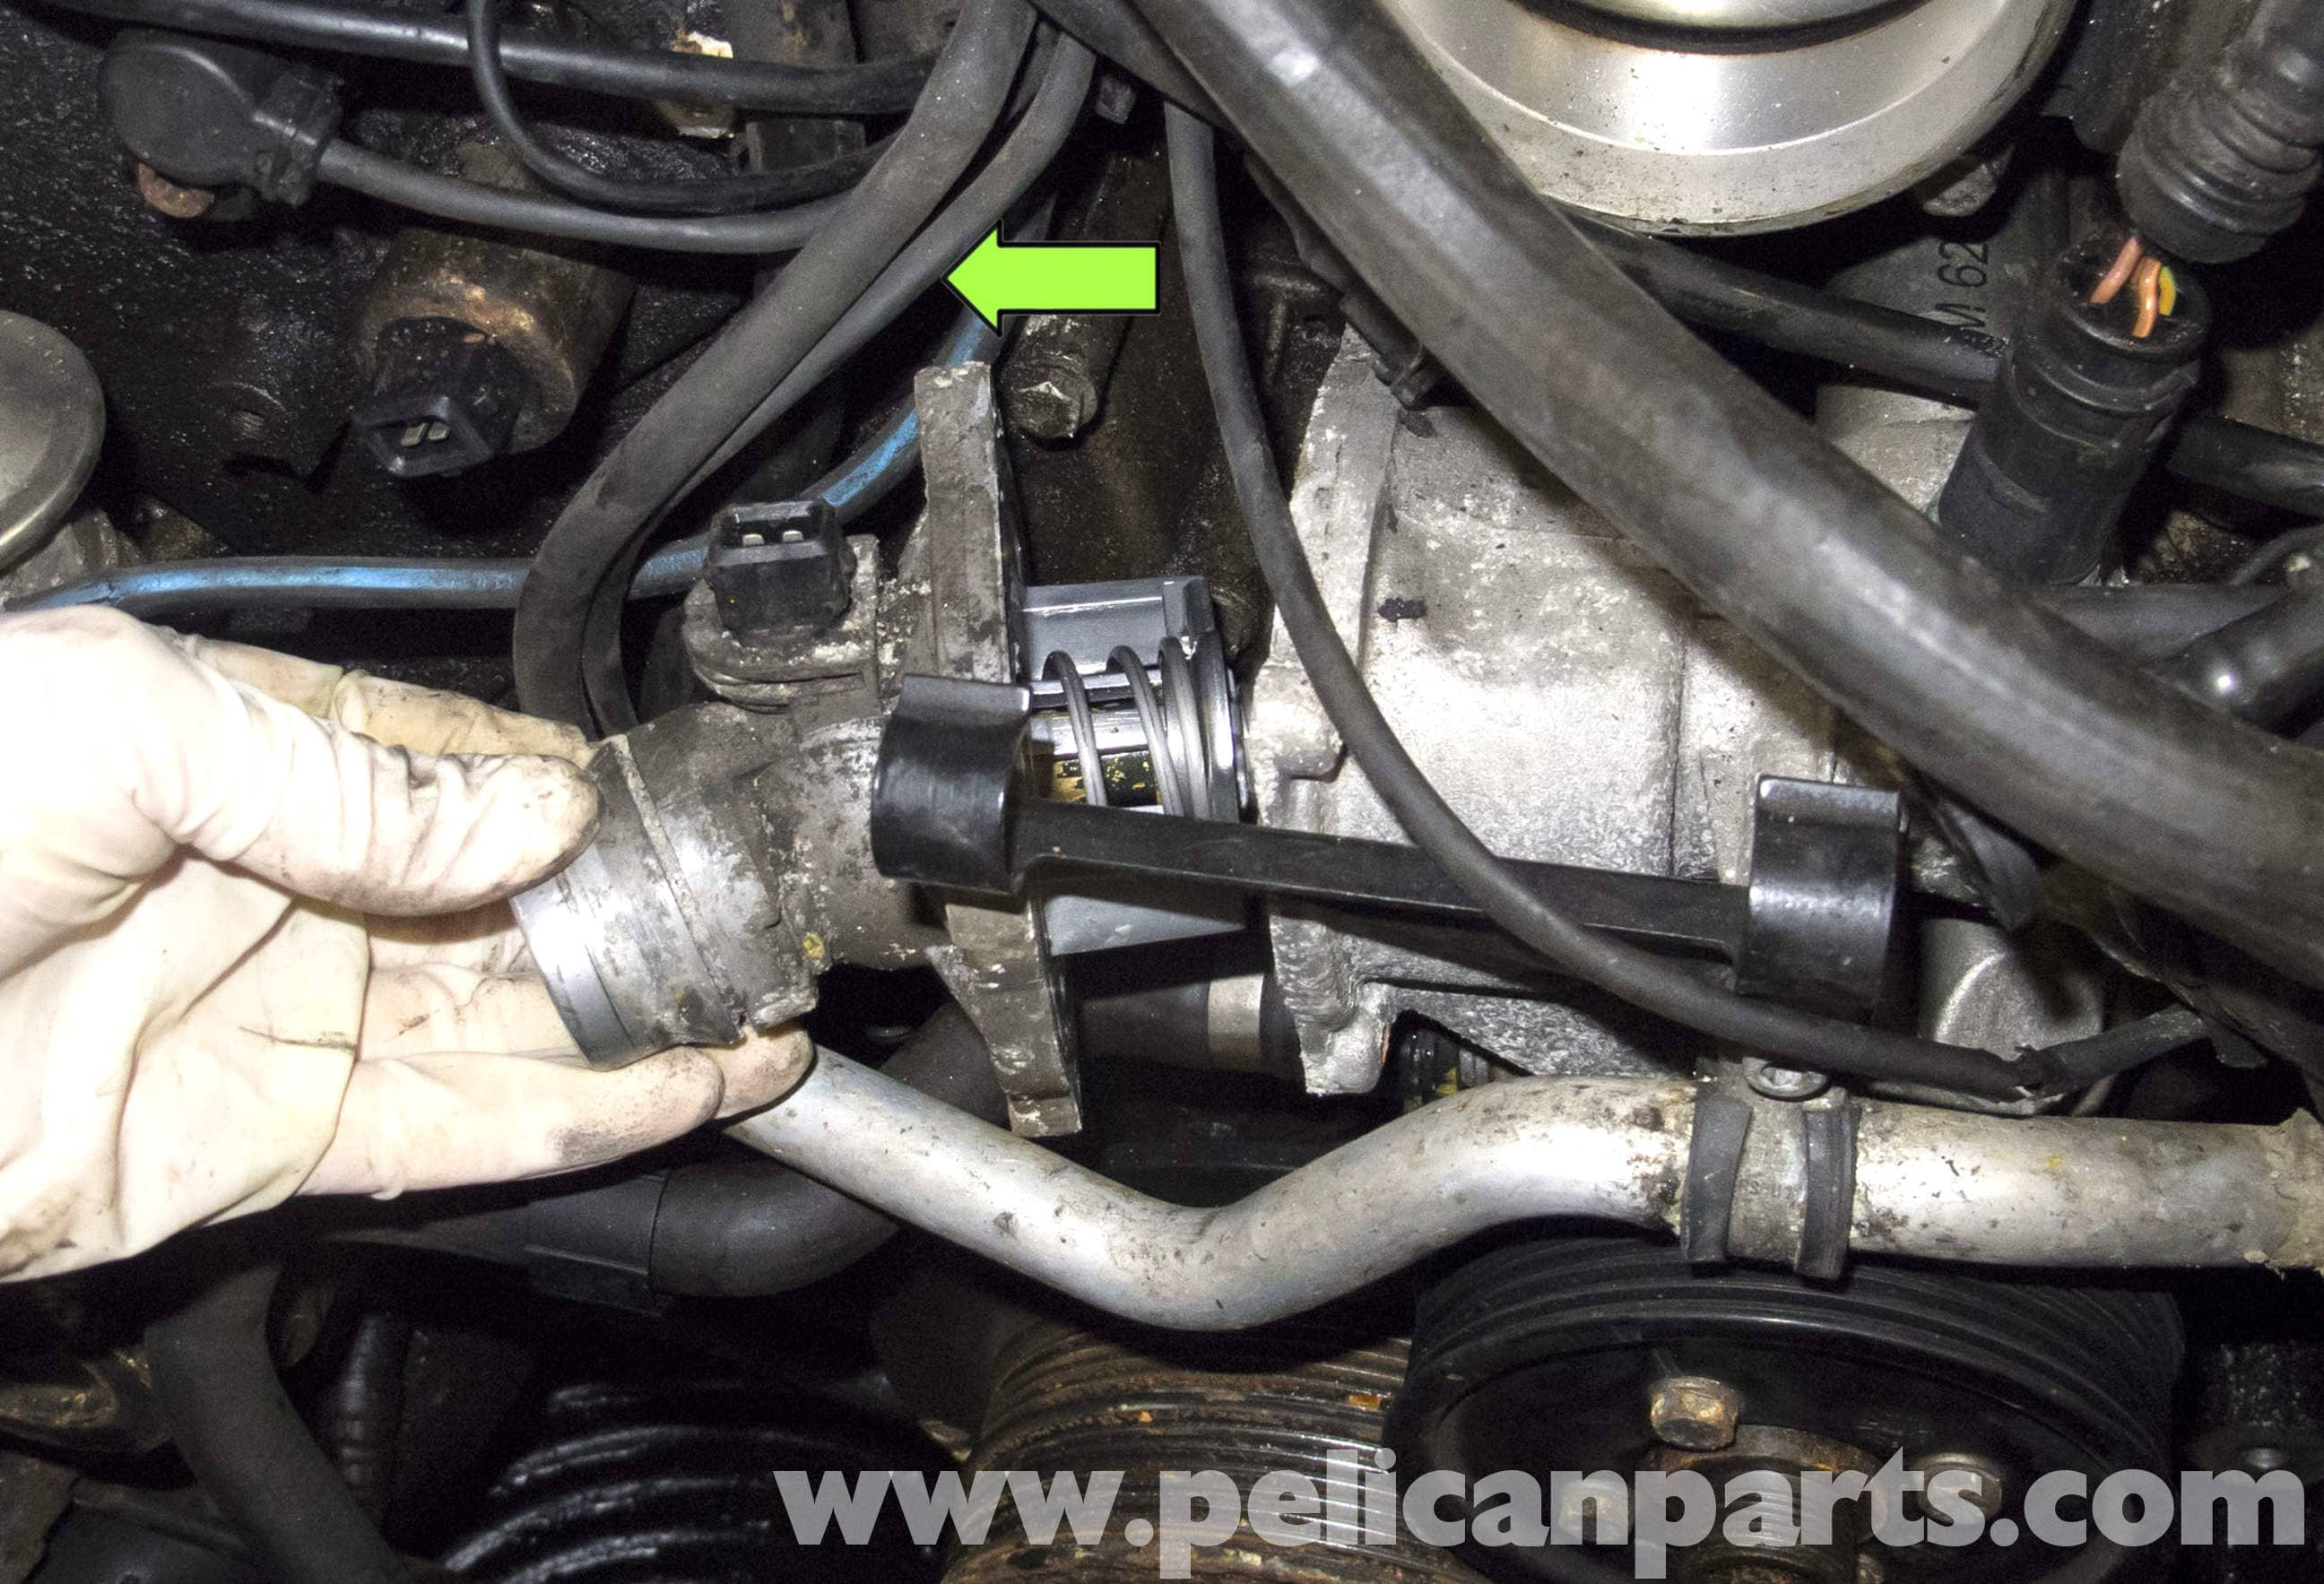 BMW X5 M62 8-Cylinder Thermostat Replacement (E53 2000 - 2006 ... M Thermostat Wiring Diagram on thermostat schematic diagram, refrigerator schematic diagram, baseboard heat diagram, thermostat wire, thermostat housing, thermostat white-rodgers wiringheatpump, thermostat installation, air conditioning diagram, thermostat symbol, thermostat troubleshooting, honeywell thermostat diagram, thermostat cable, thermostat manual, thermostat switch, thermostat clip art, controls for gas valve diagram, wall heater thermostat diagram, thermostat cover, circuit diagram,